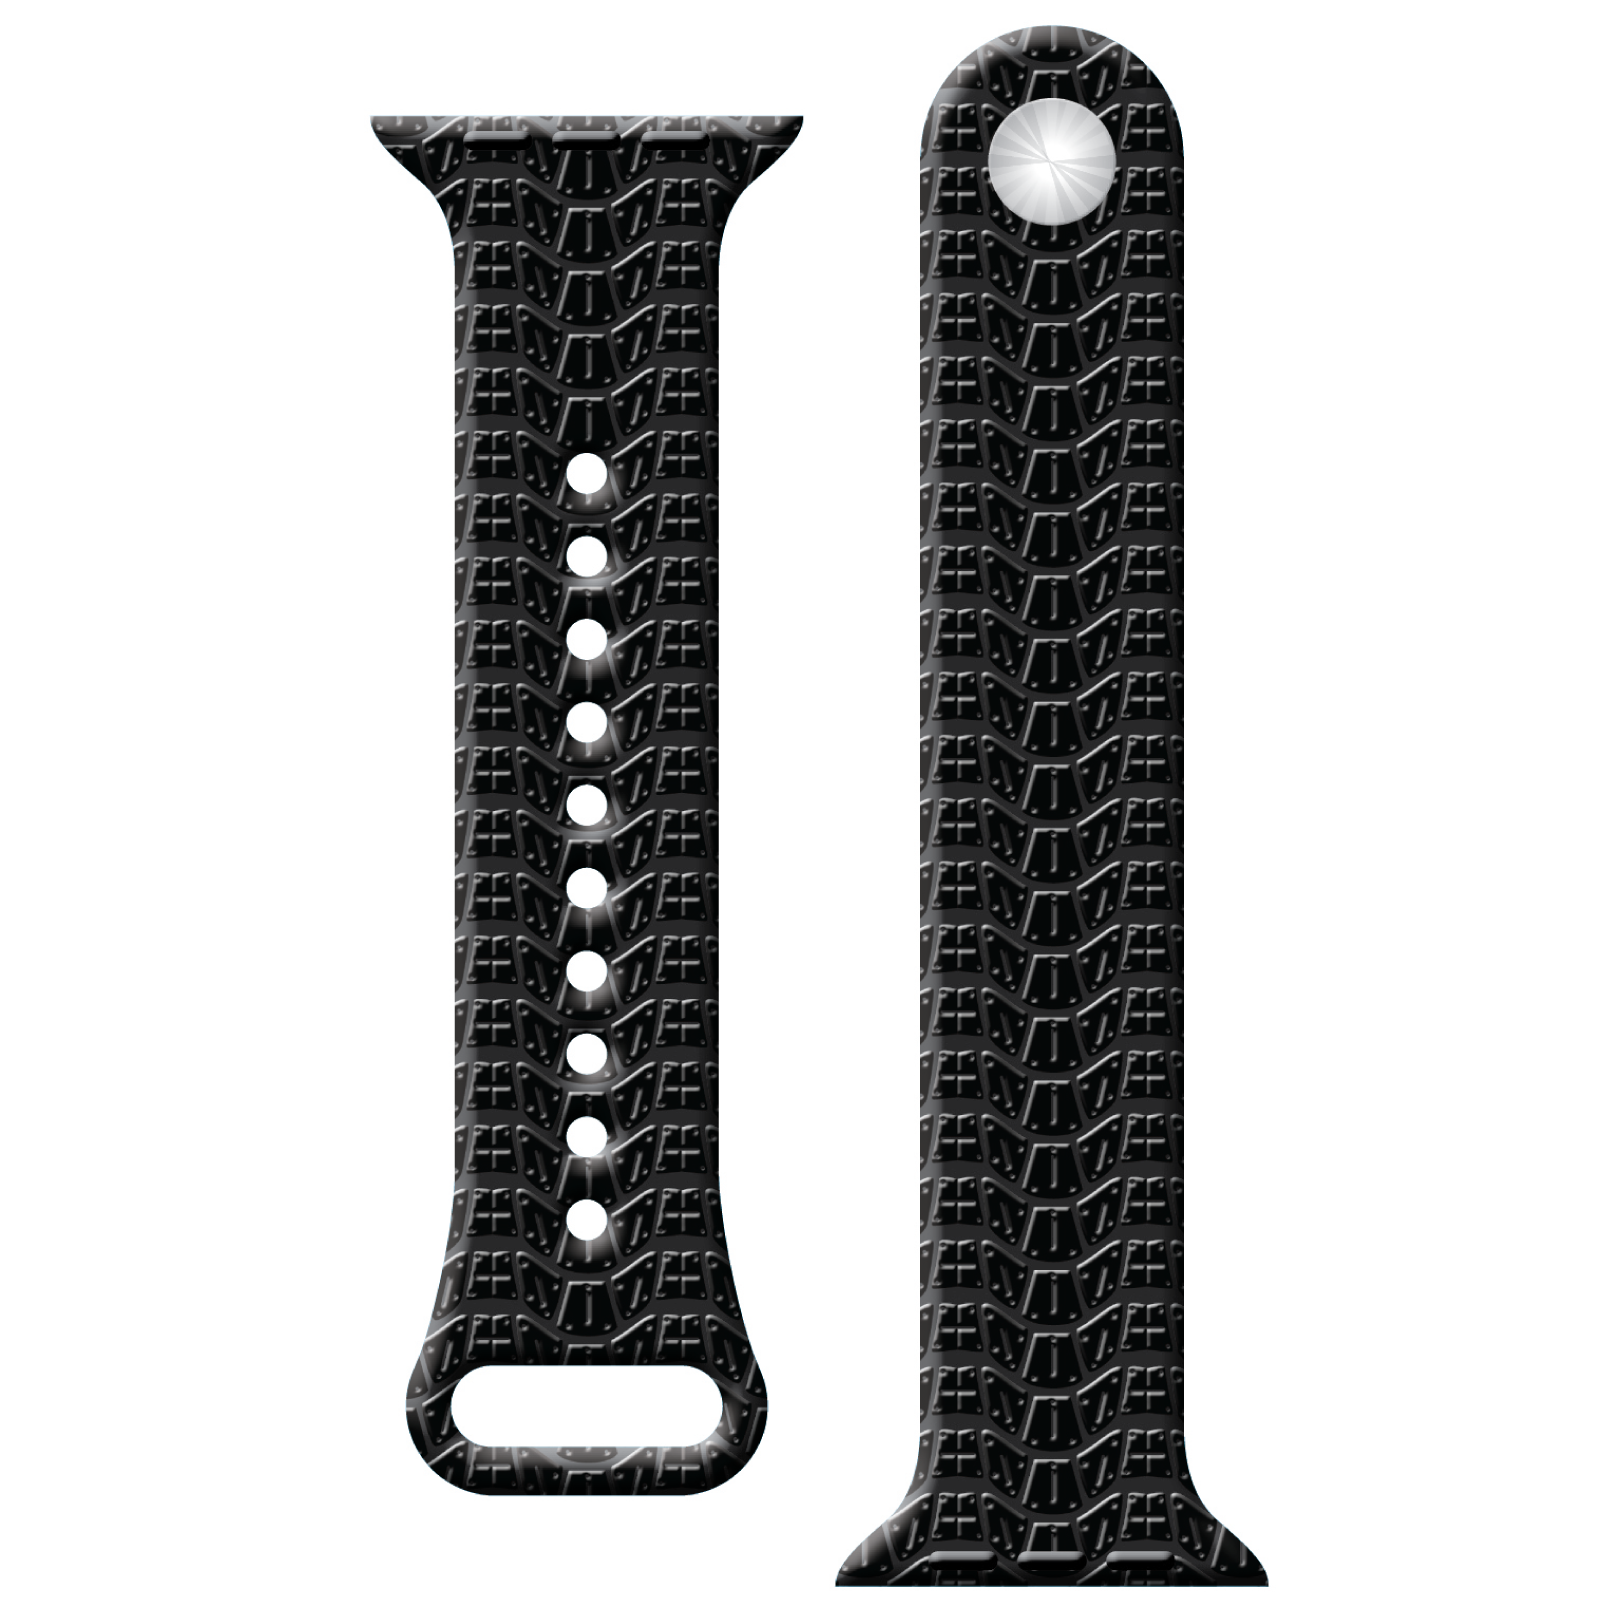 Grip - 42mm - Apple Watch Band - Fits Apple Watch